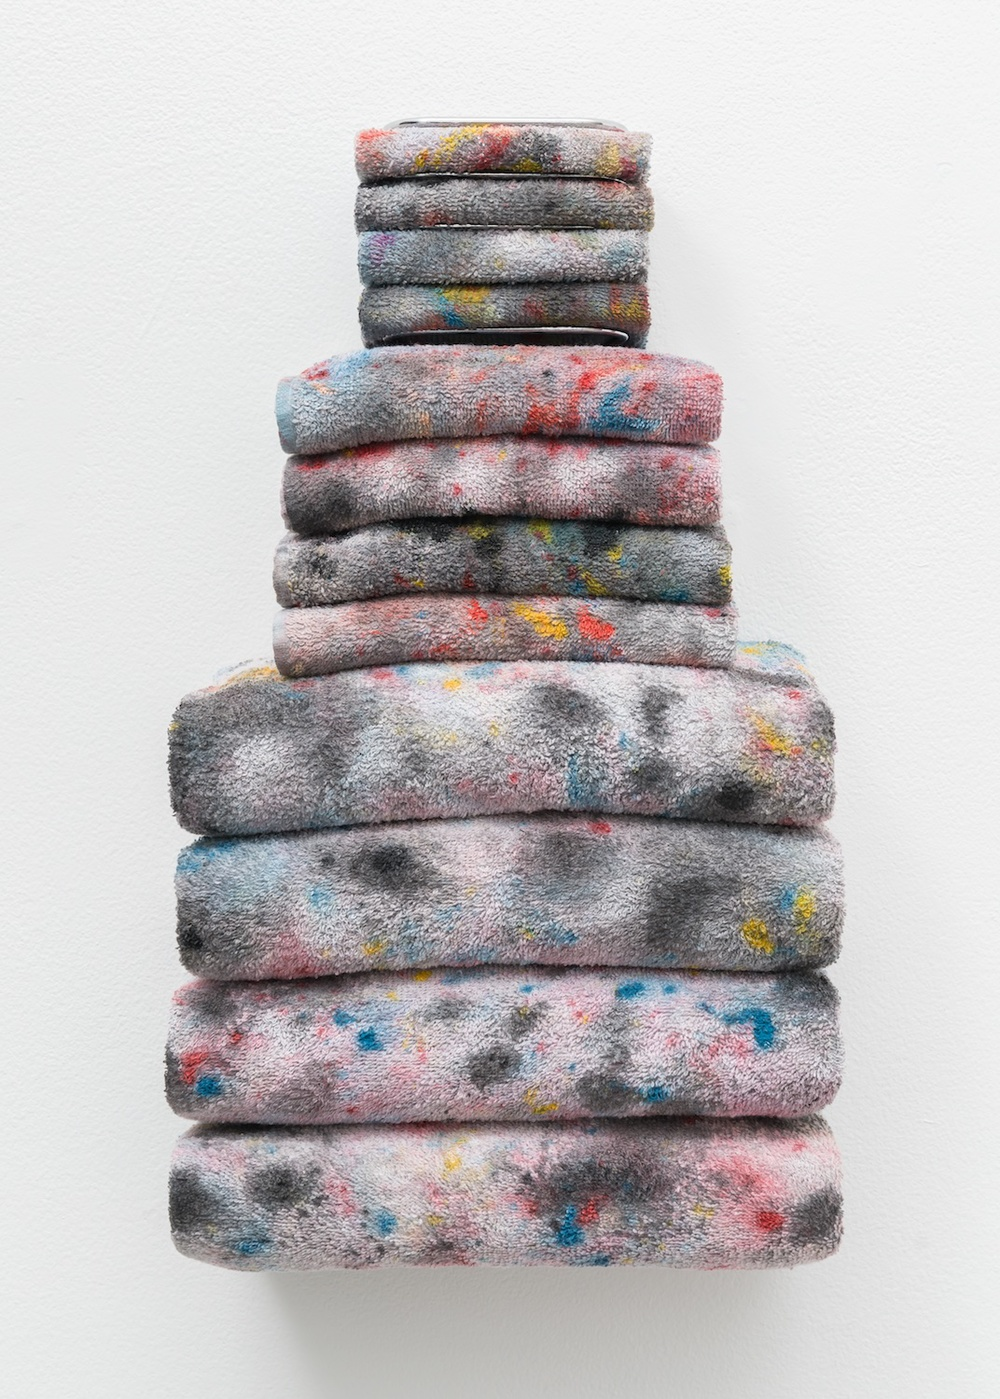 "Amanda Ross-Ho Untitled Textile Arrangement (TOWEL RACK #4) 2014 Chrome towel rack, acrylic and dye on washcloths, hand towels and bath towels 21"" x 11 ½"" x 7"" ARH105"